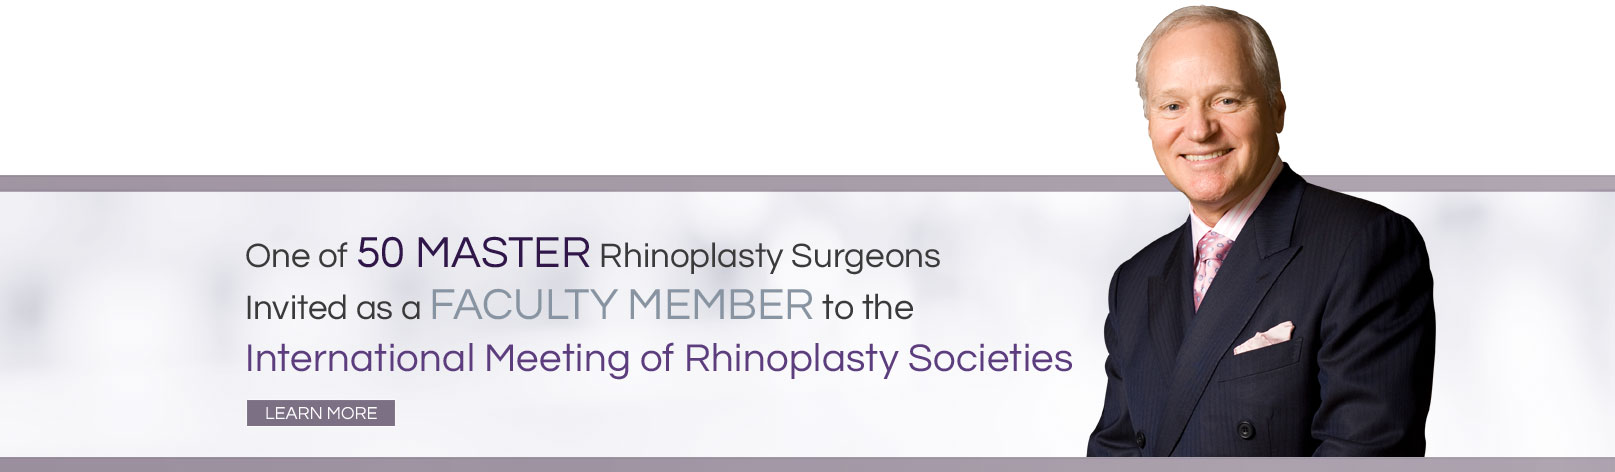 Toronto Master Rhinoplasty Surgeon